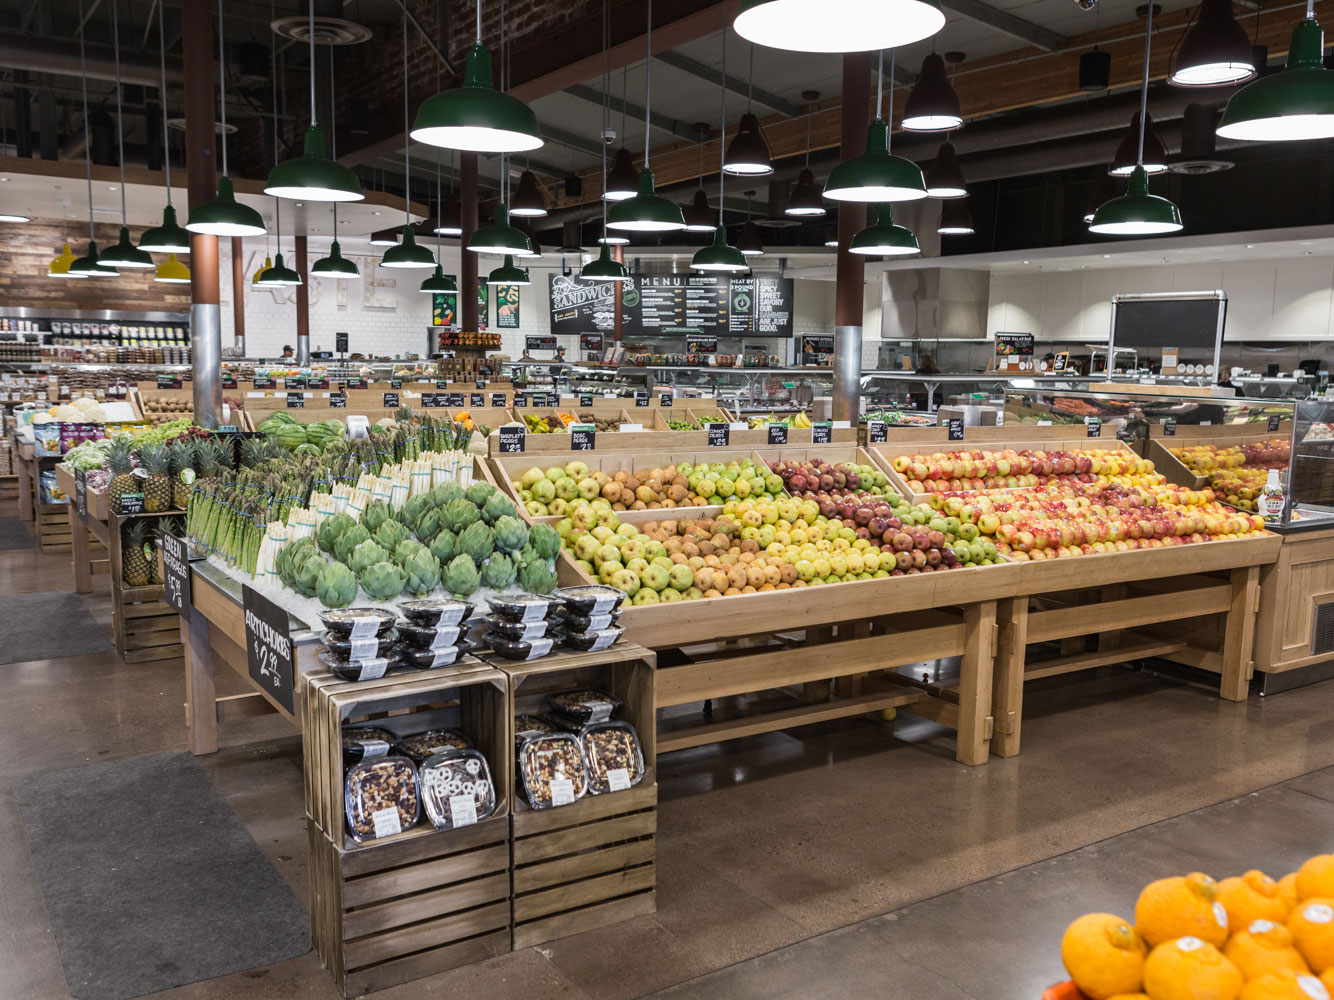 L A 's Best Fancy Grocery Store Is This Bristol Farms in the